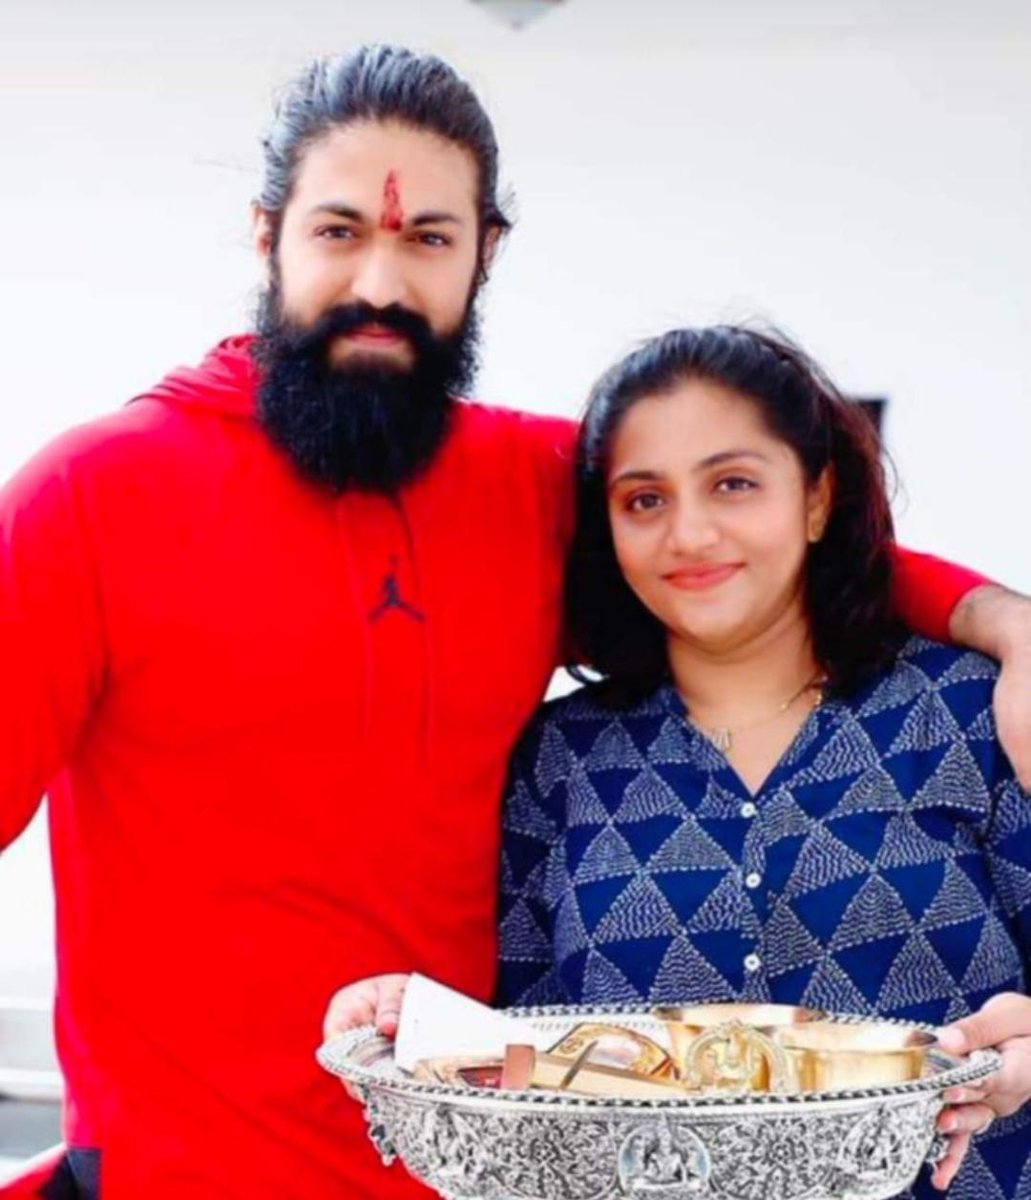 Today's Pic Of @TheNameIsYash and Sister #Nandini The Happiness Of Brother And Sister God Bless Both Of them Like This only they should Celebrate Every Year....  #HappyRakshaBandhan  #HappyFriendshipDay2020 #HappyRakhi #rakhi2020 #RakshaBandhan #Rakhi #KGFChapter2 #YashBOSS #Yashpic.twitter.com/CqK6sZ6Cn4